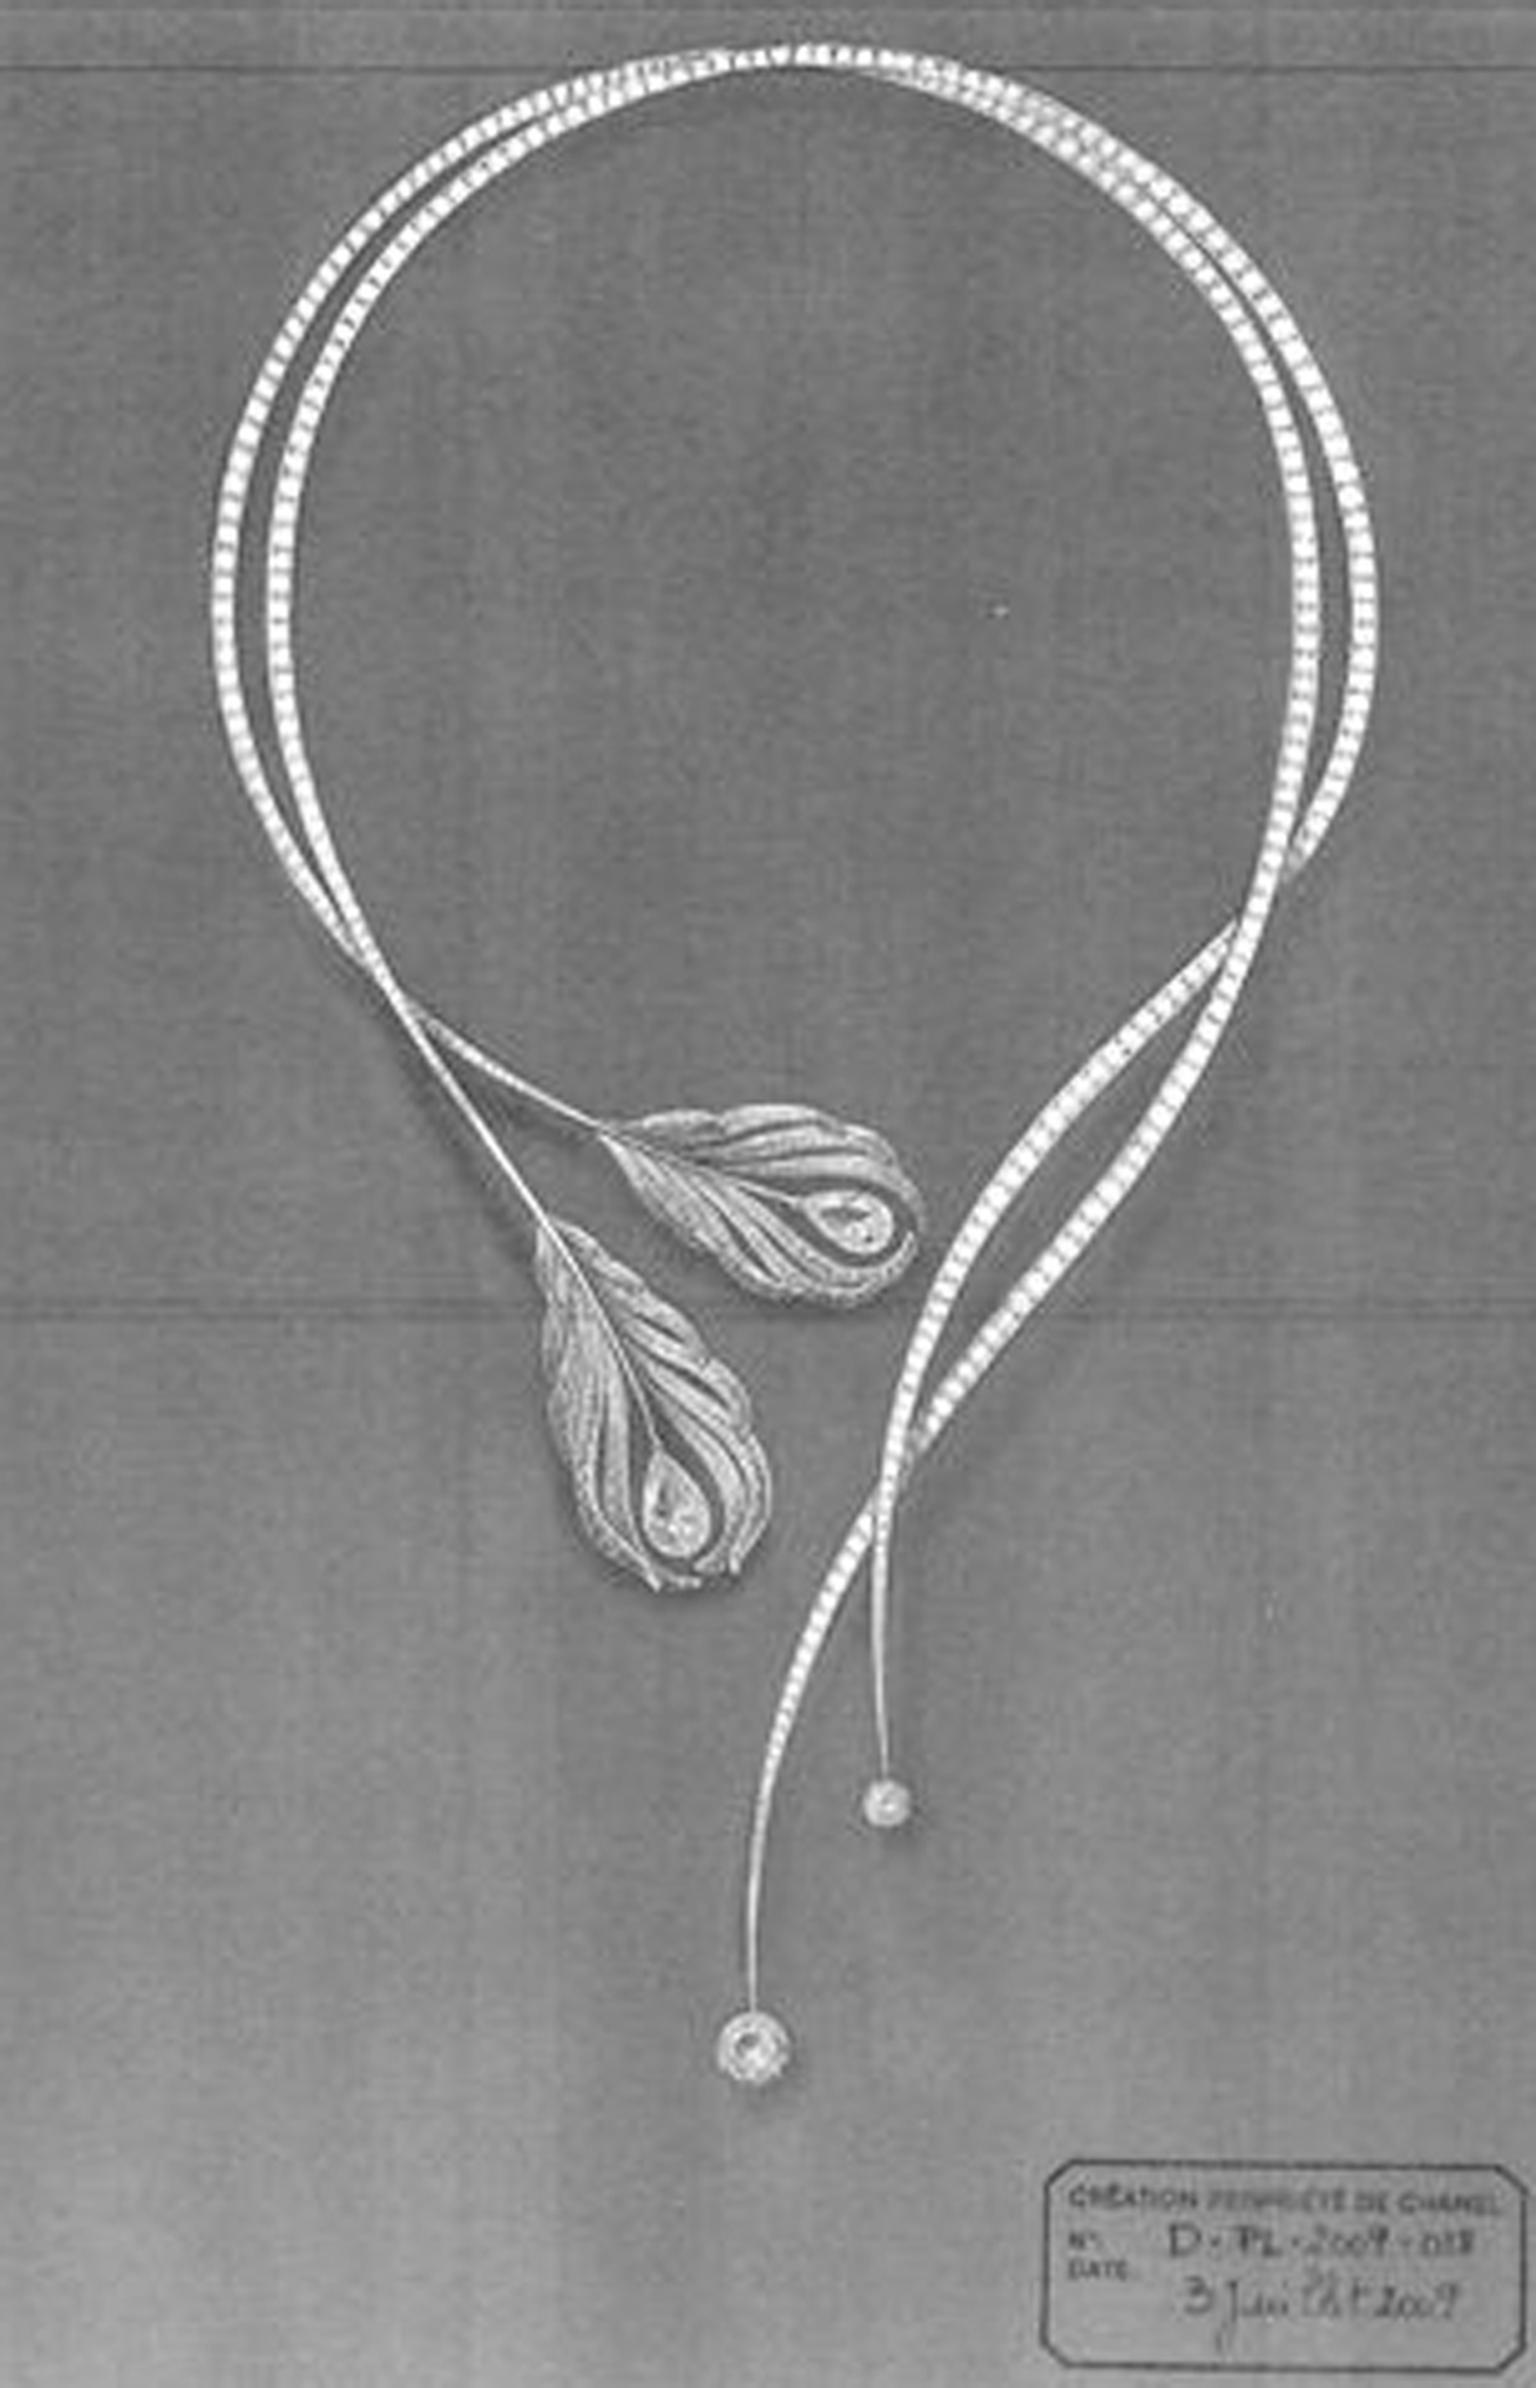 Sketch of Chanel Plume necklace from the 2010 high jewellery collection